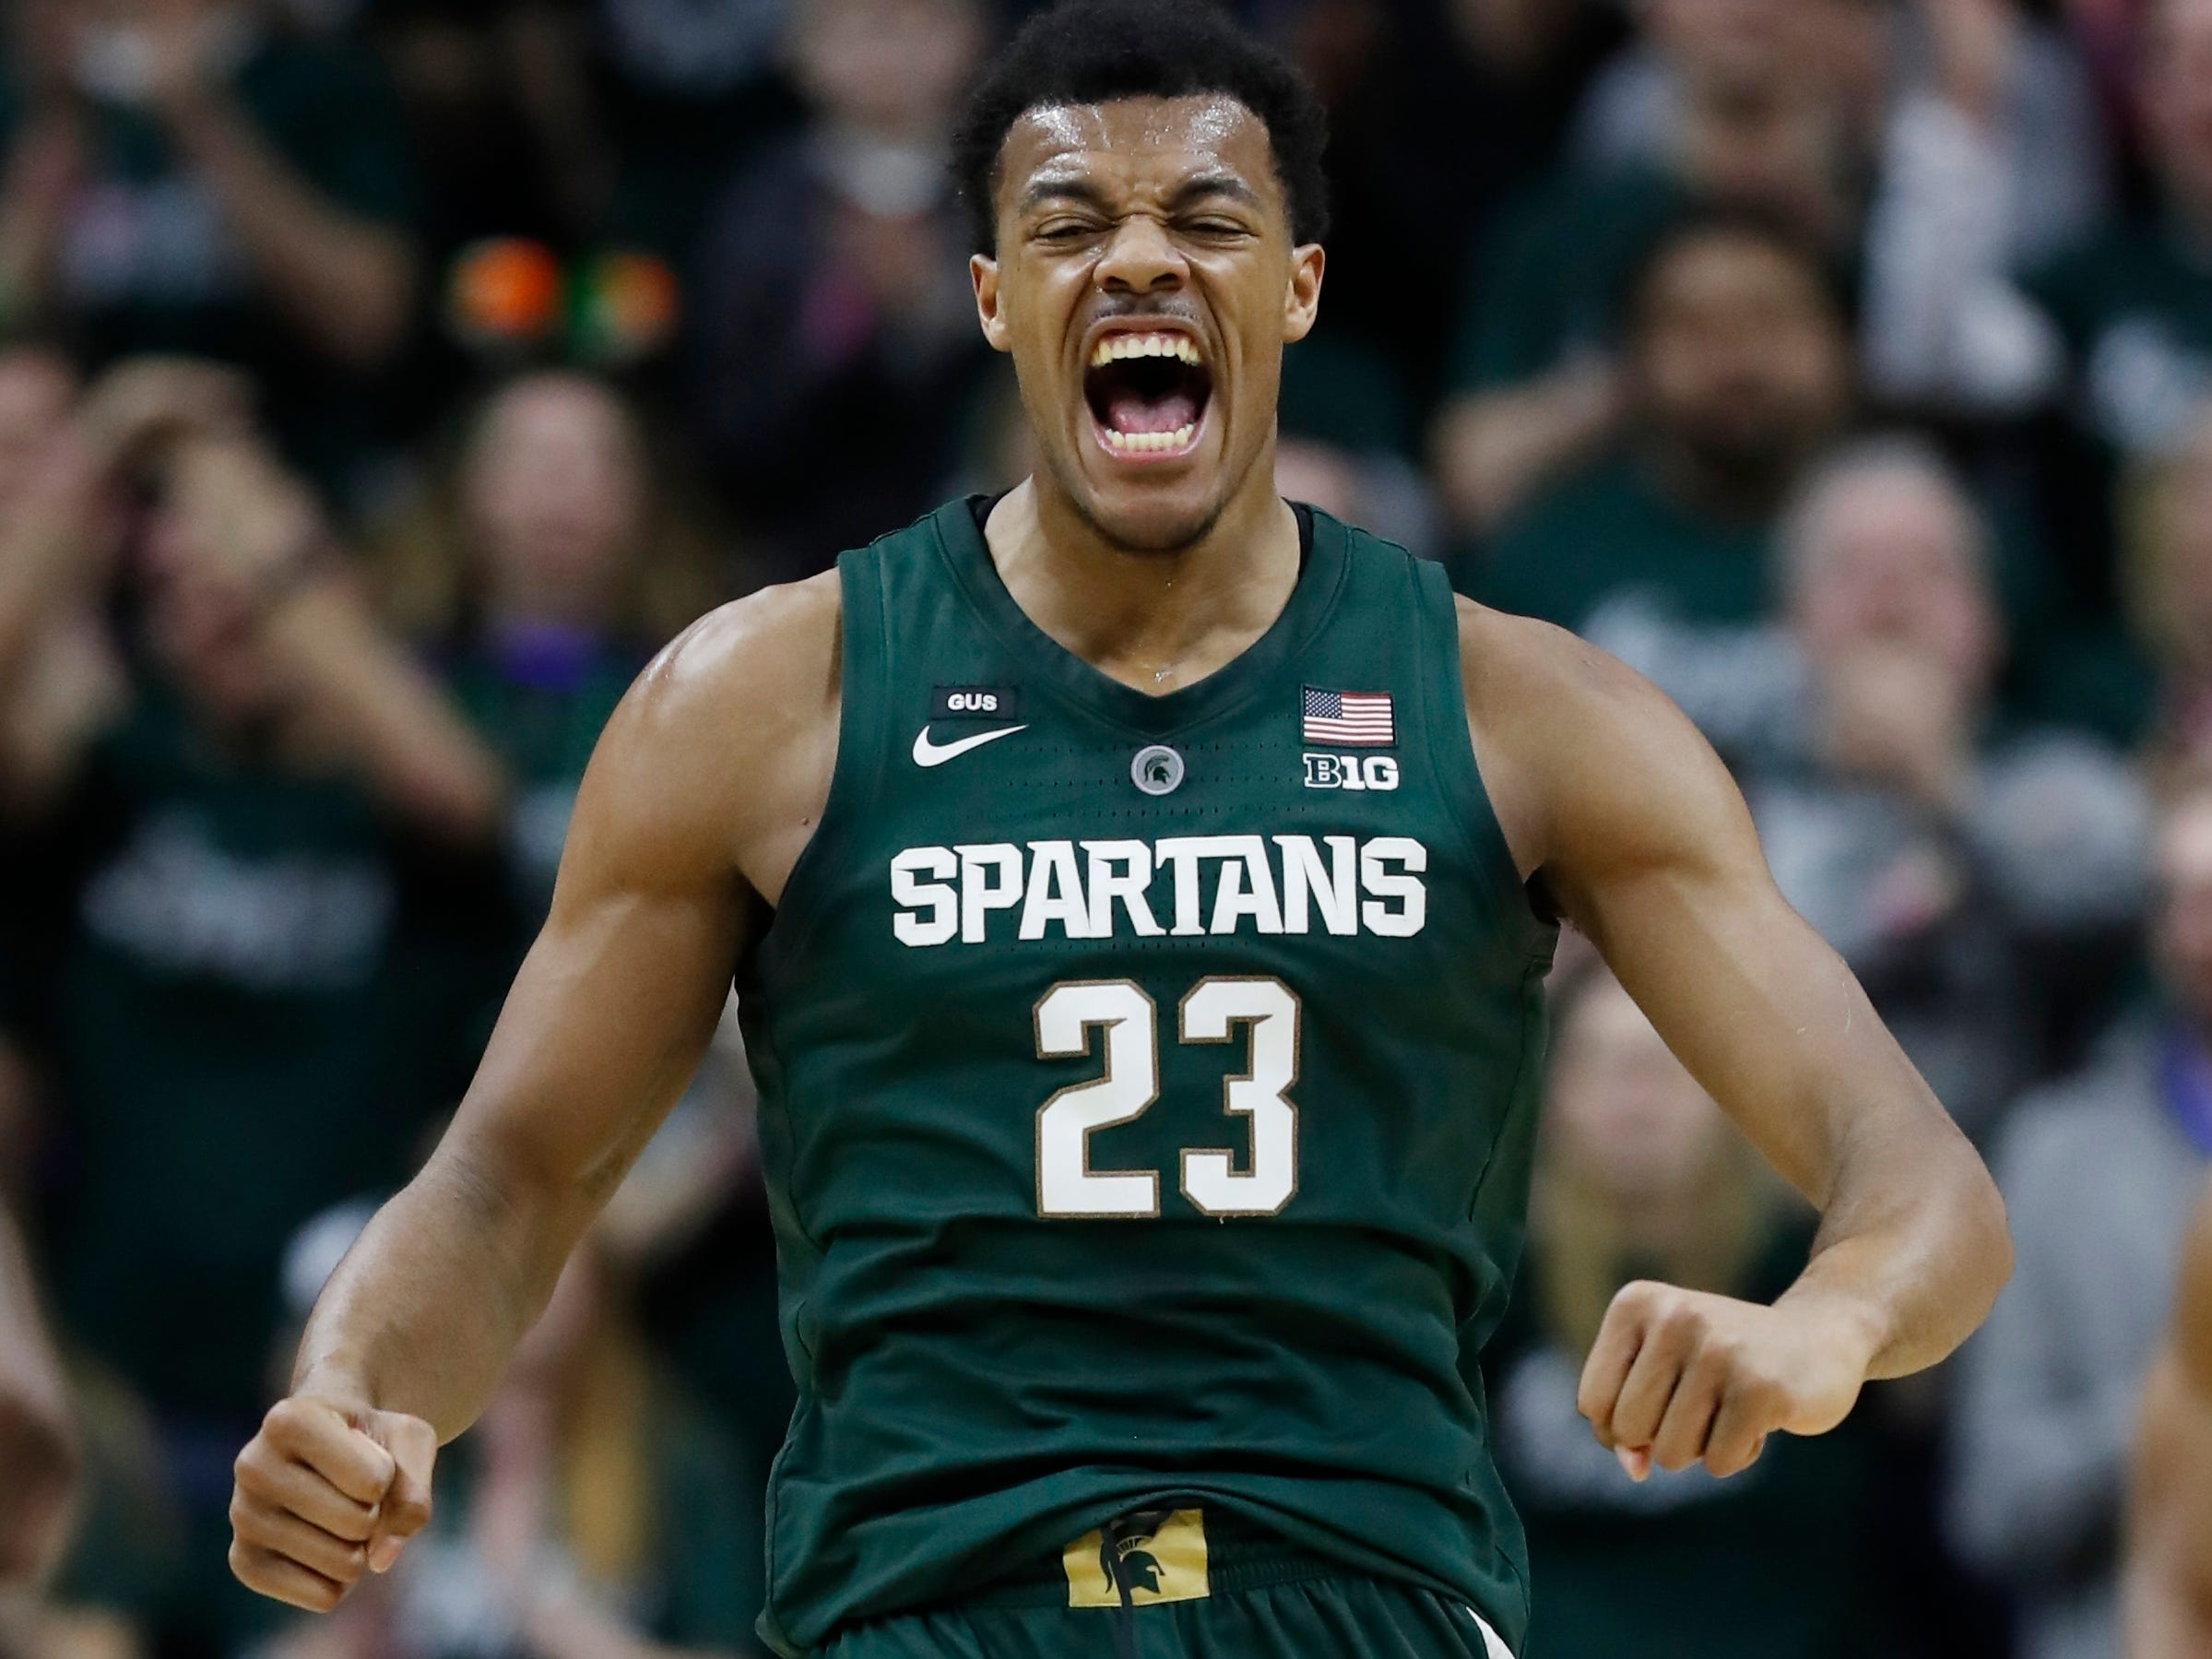 Michigan State forward Xavier Tillman reacts after a basket during the first half of an NCAA college basketball game against Nebraska.